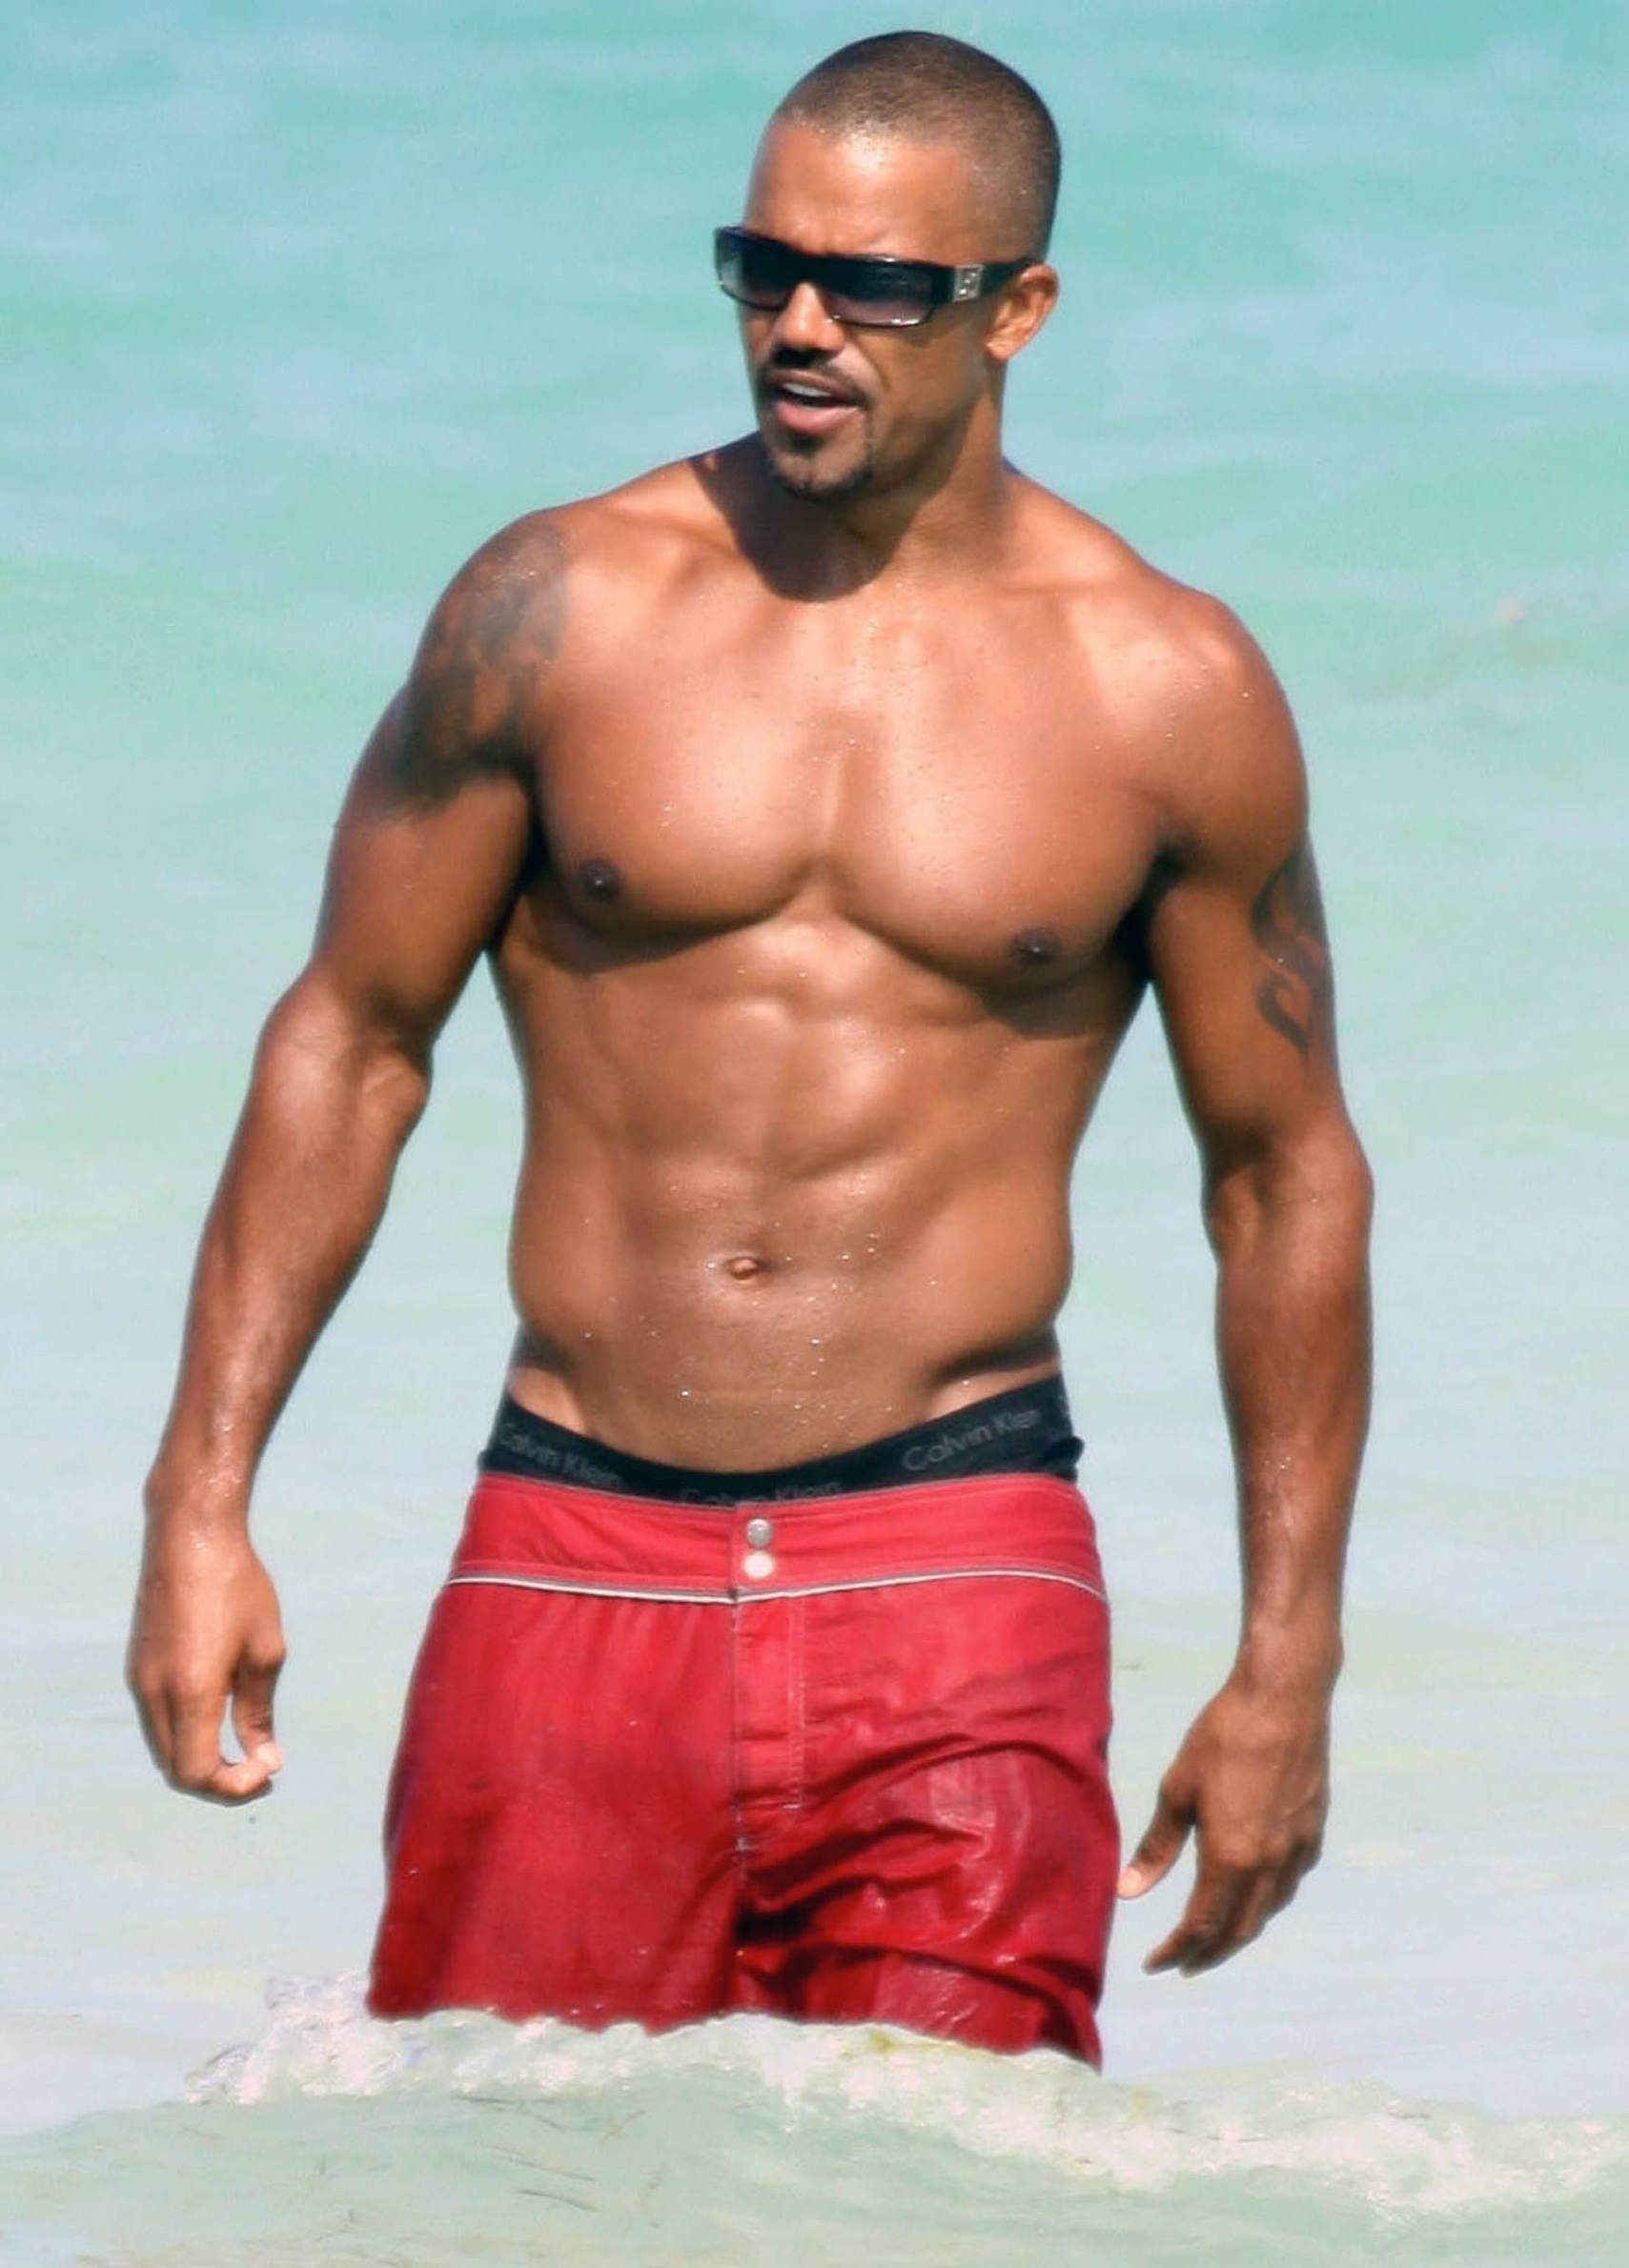 """e8be0d3b5aff1 Shemar Moore Beach. EXCLUSIVE!! """"Criminal Minds"""" star Shemar Moore shows of his  beach bod in a pair of red swim trunks that slipped down revealing ..."""